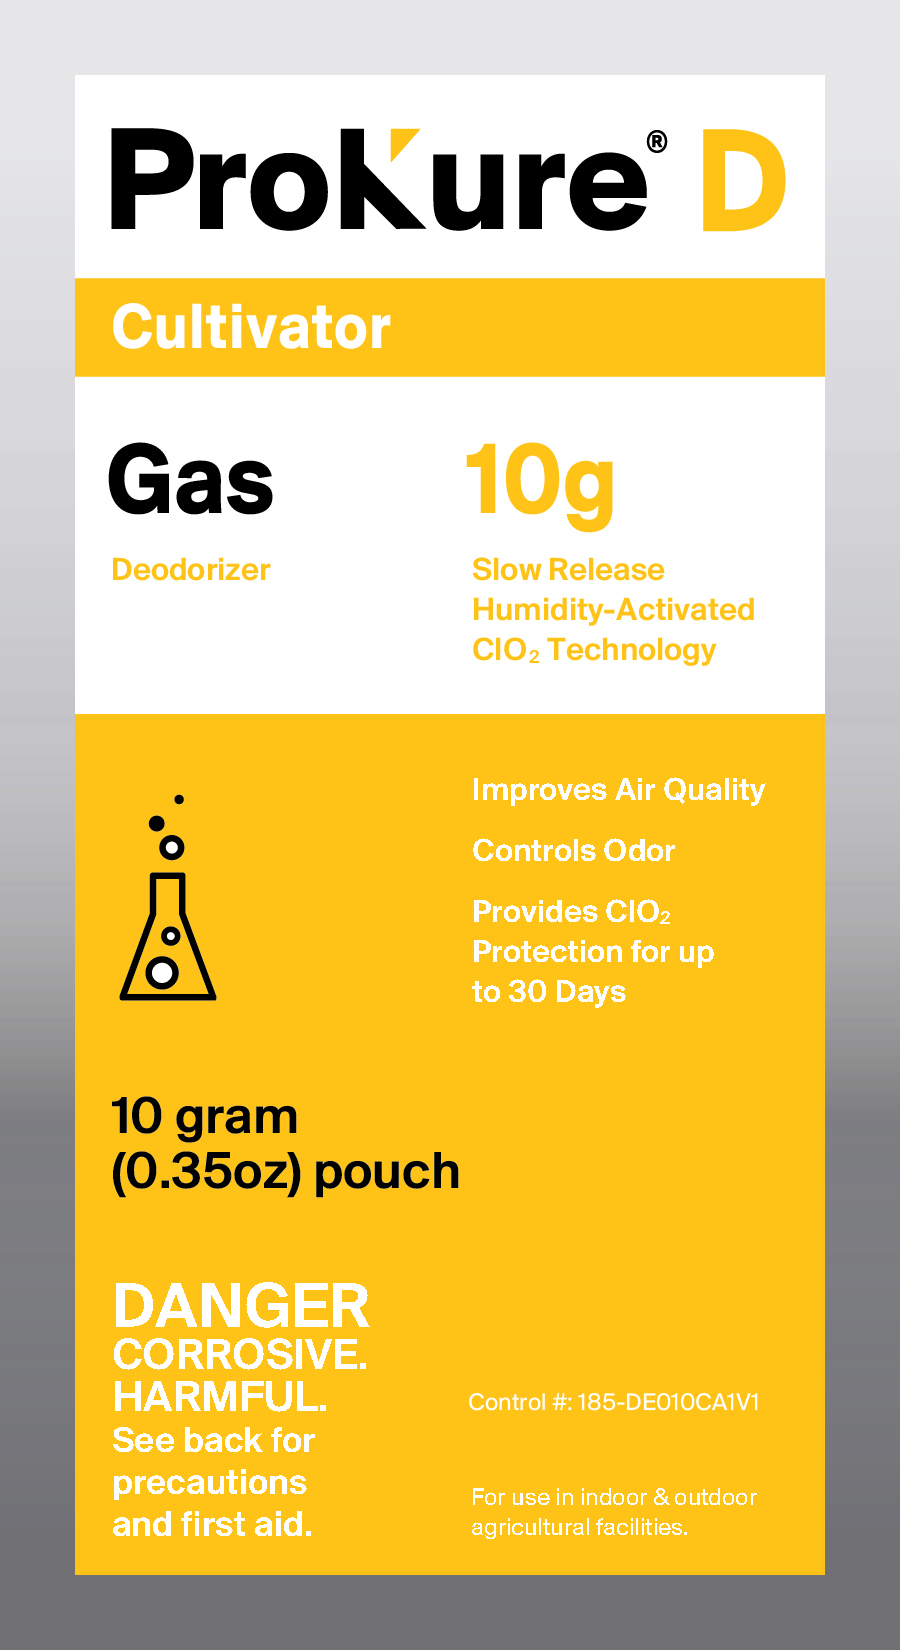 ProKure Extended Gas Release 1000 Cubic Feet - ProKure Extended Gas, CLO2 Protection for up to 30 days. Humidity Activated!